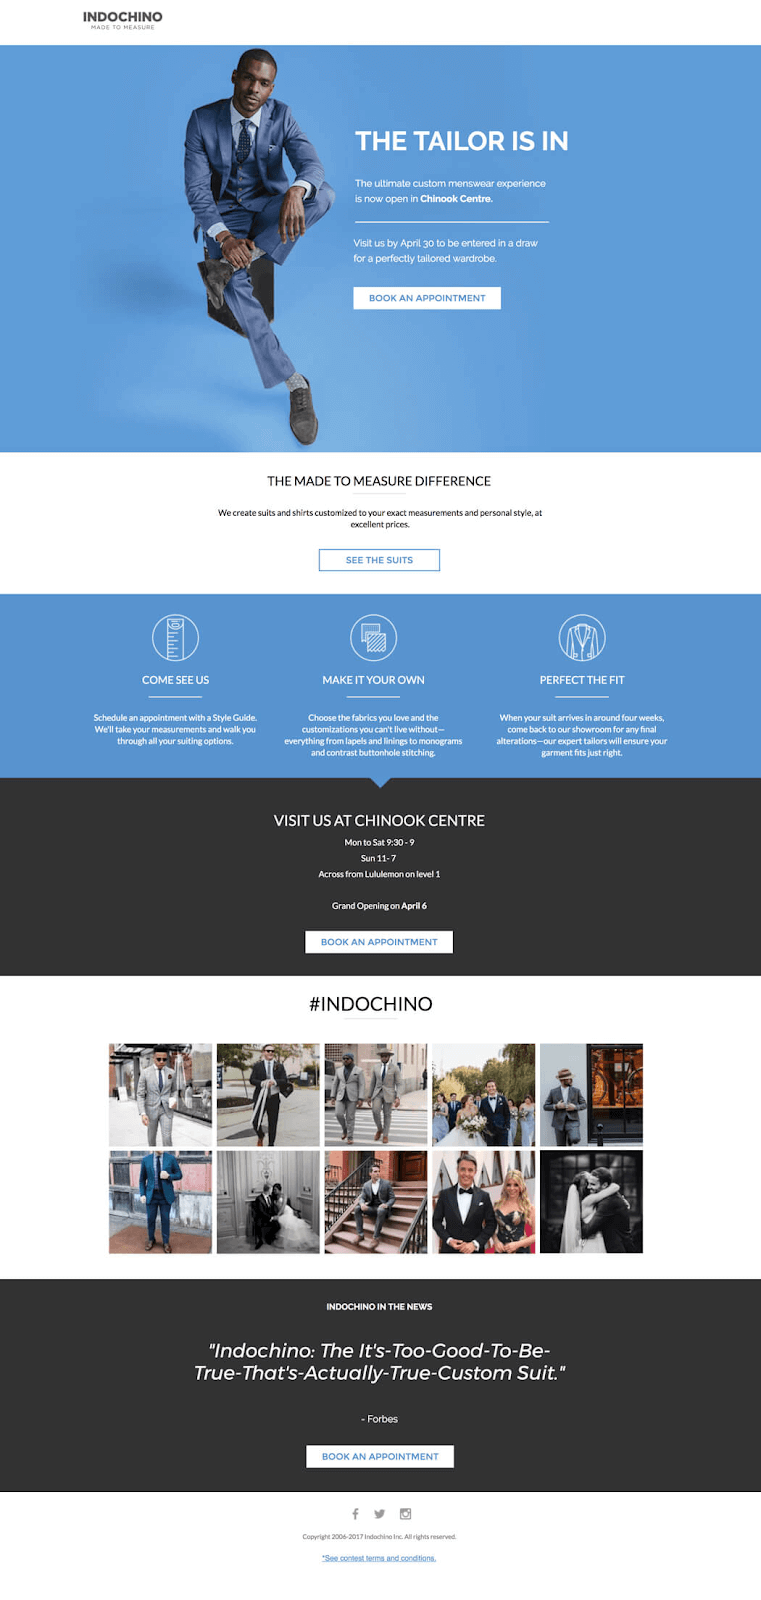 Indochino's landing page has a perfect color balance